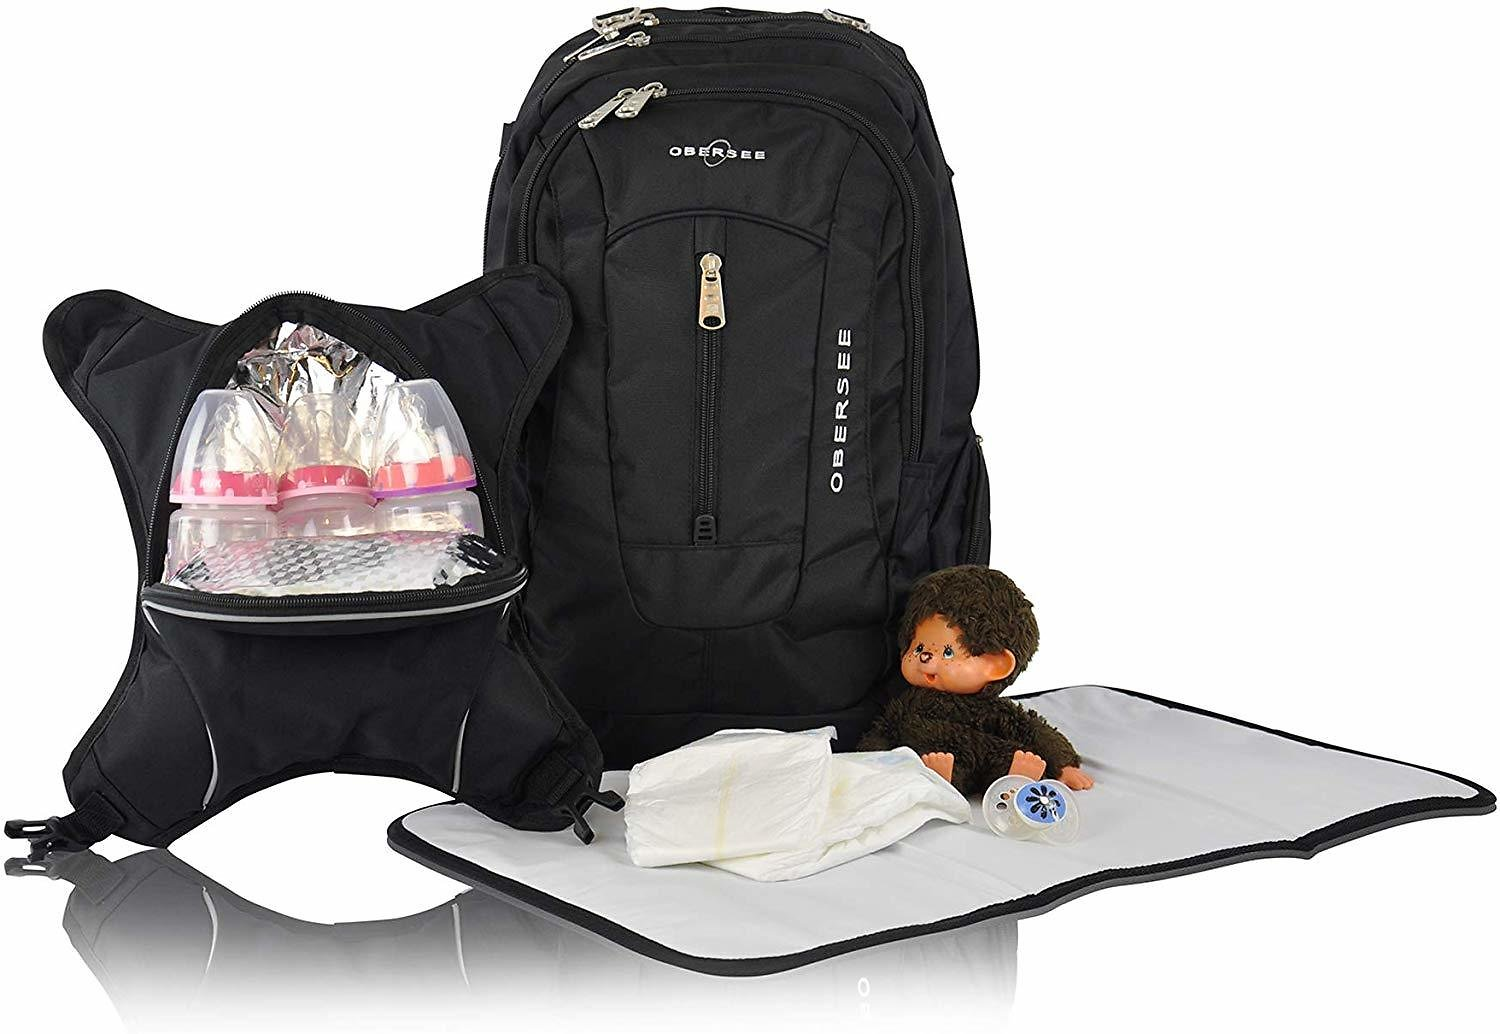 Obersee Bern Diaper Bag Backpack with Detachable Cooler, Black/Turquoise